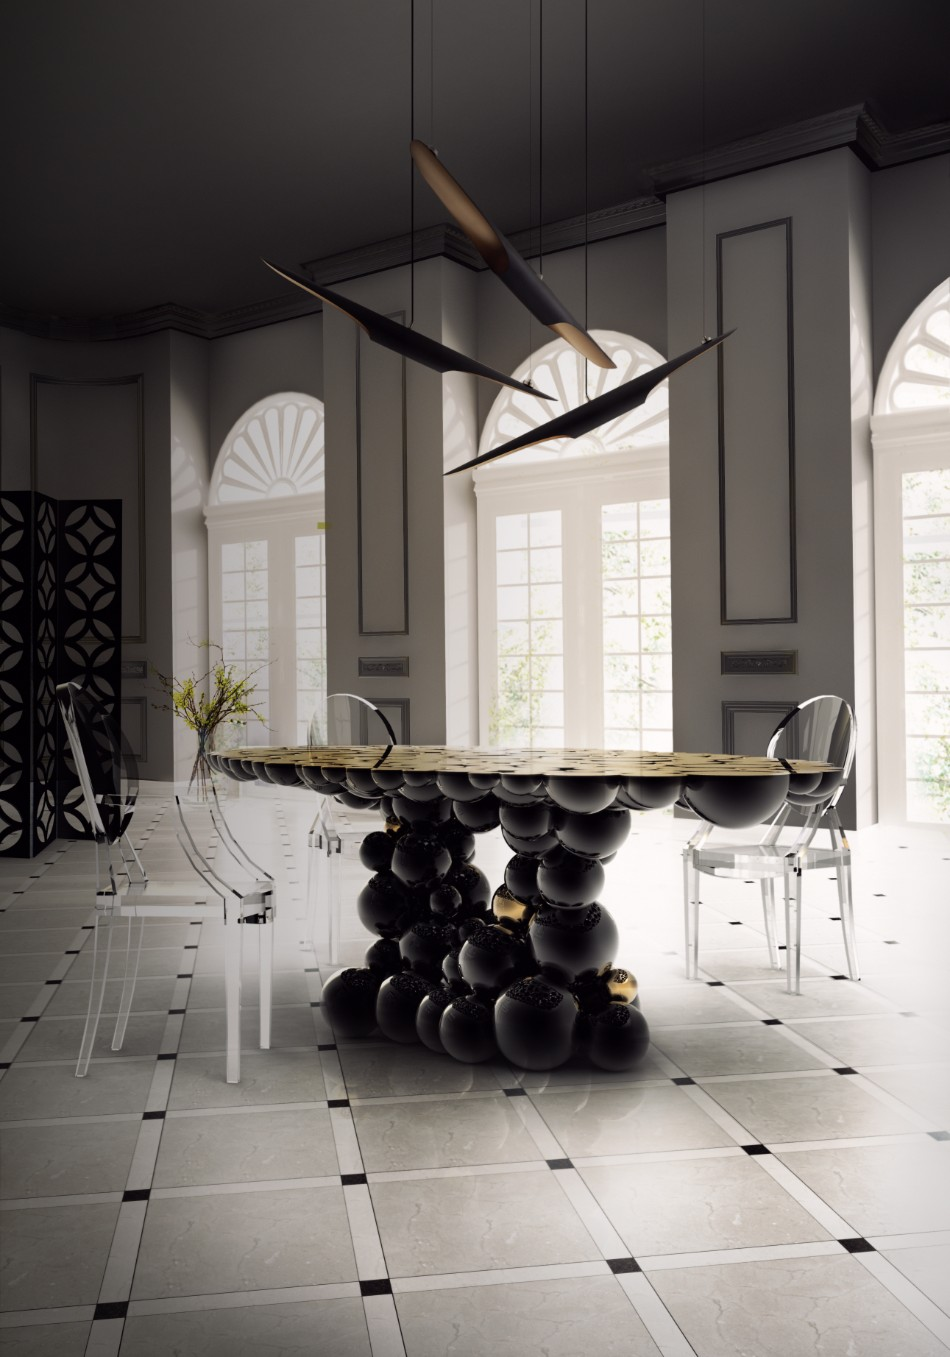 Top 10 Luxury Dining Tables That Speak For Themselves | www.bocadolobo.com #moderndiningtables #luxurydiningtables #luxurytables #exclusivedesign #productdesign #interiordesign #famousbrands #luxurybrands #italianbrands #bestbrands #diningroom #thediningroom #diningarea #diningareadesign #tables luxury dining tables Top 10 Luxury Dining Tables That Speak For Themselves Top 10 Luxury Dining Tables That Speak For Themselves 10